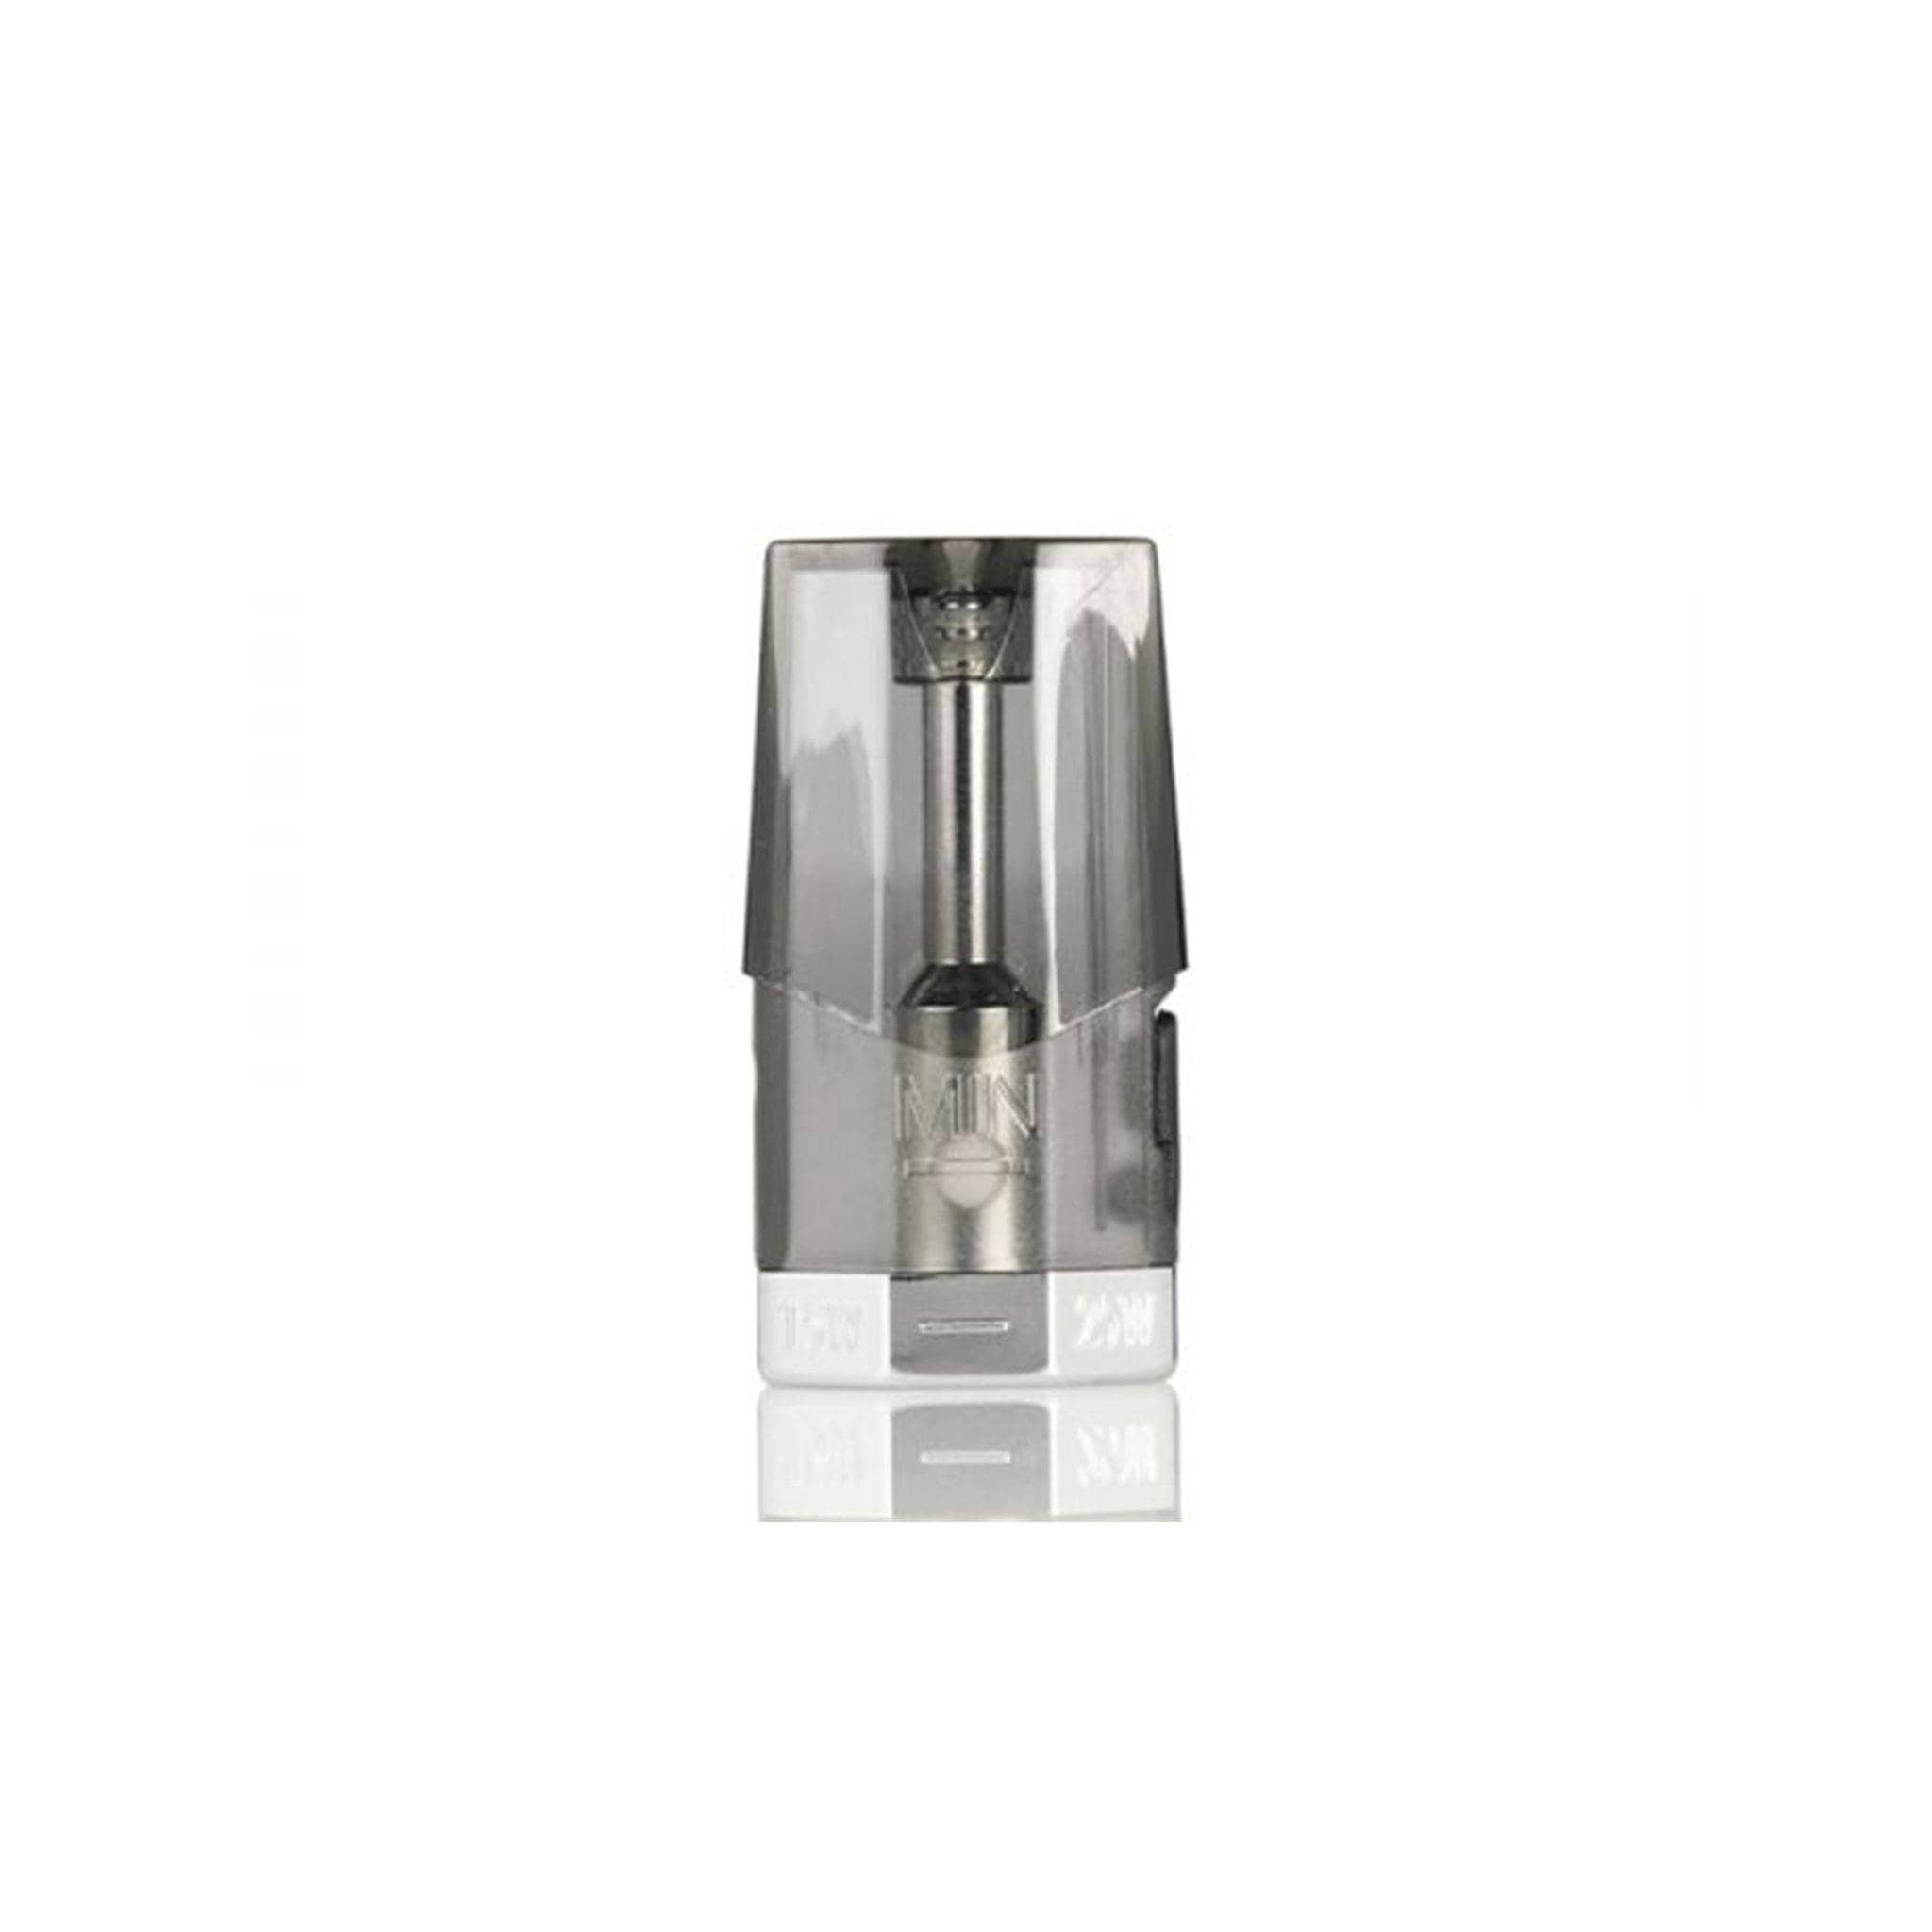 SMOK NFIX REPLACEMENT POD (Priced Individually) BC Compliant